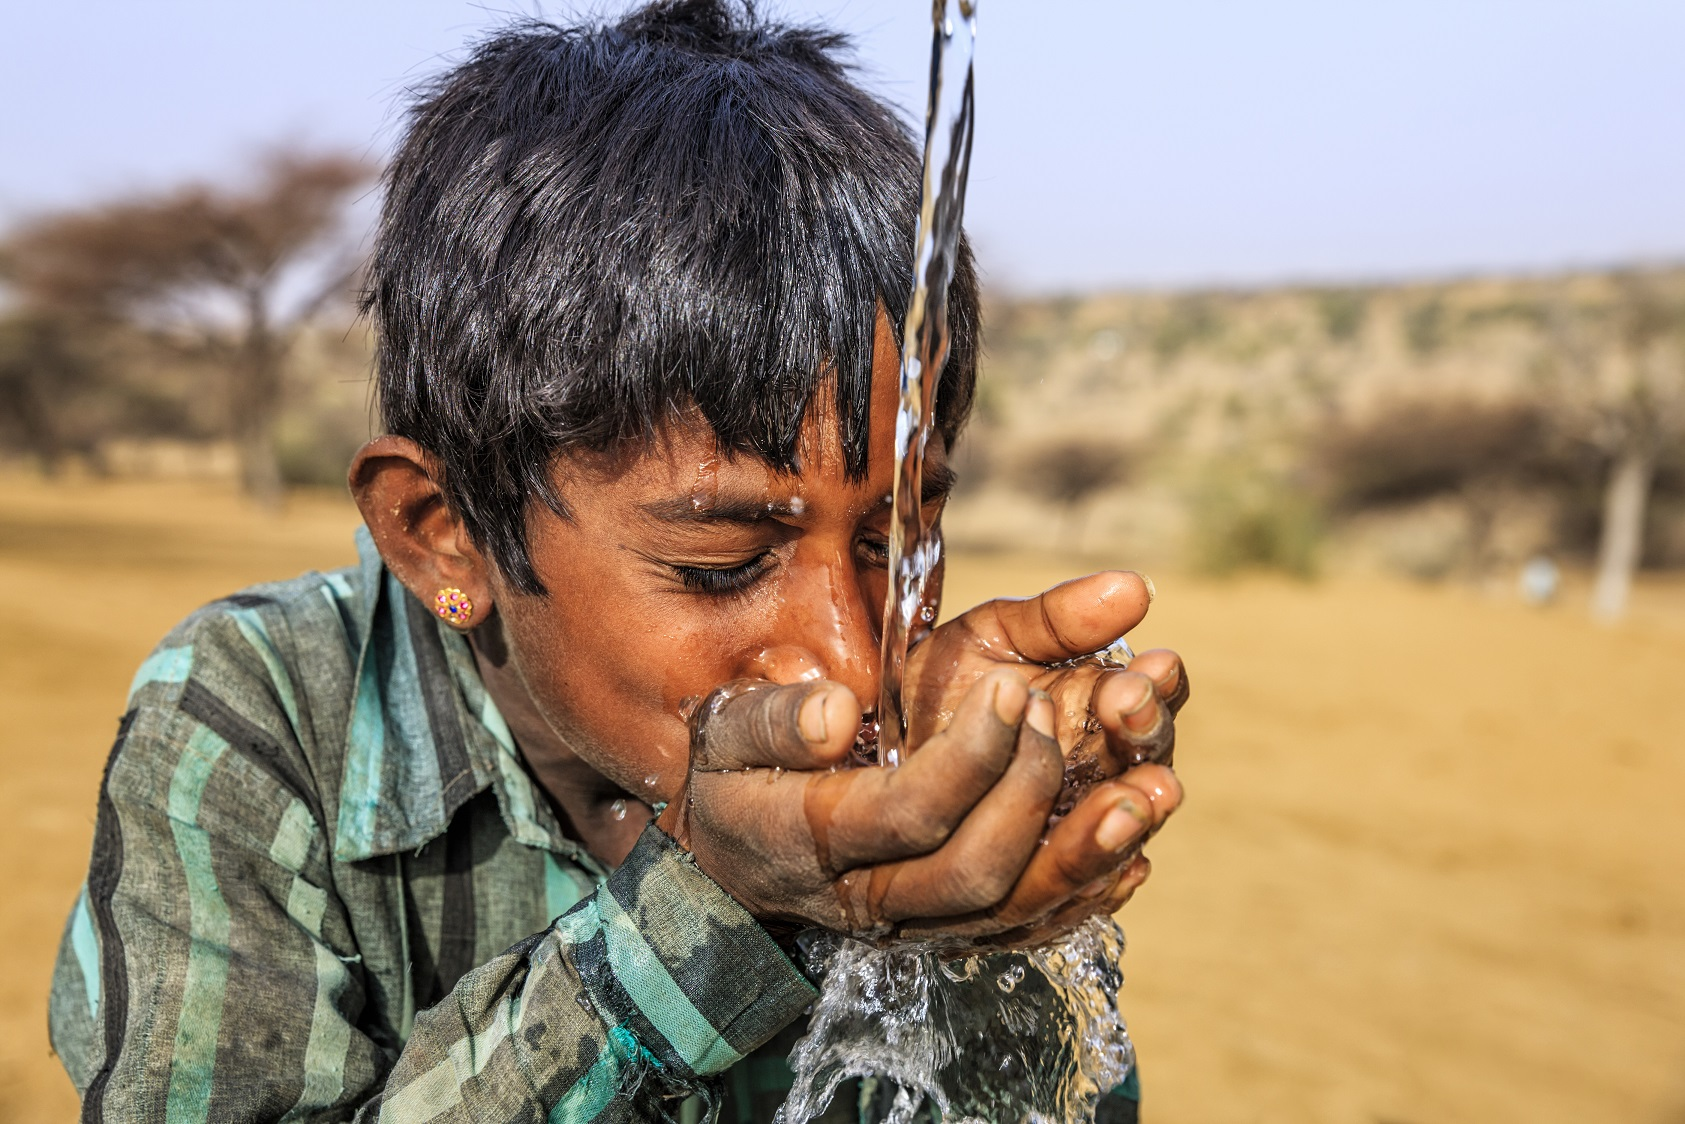 Image of young Indian boy catching clear water in his hands and drinking